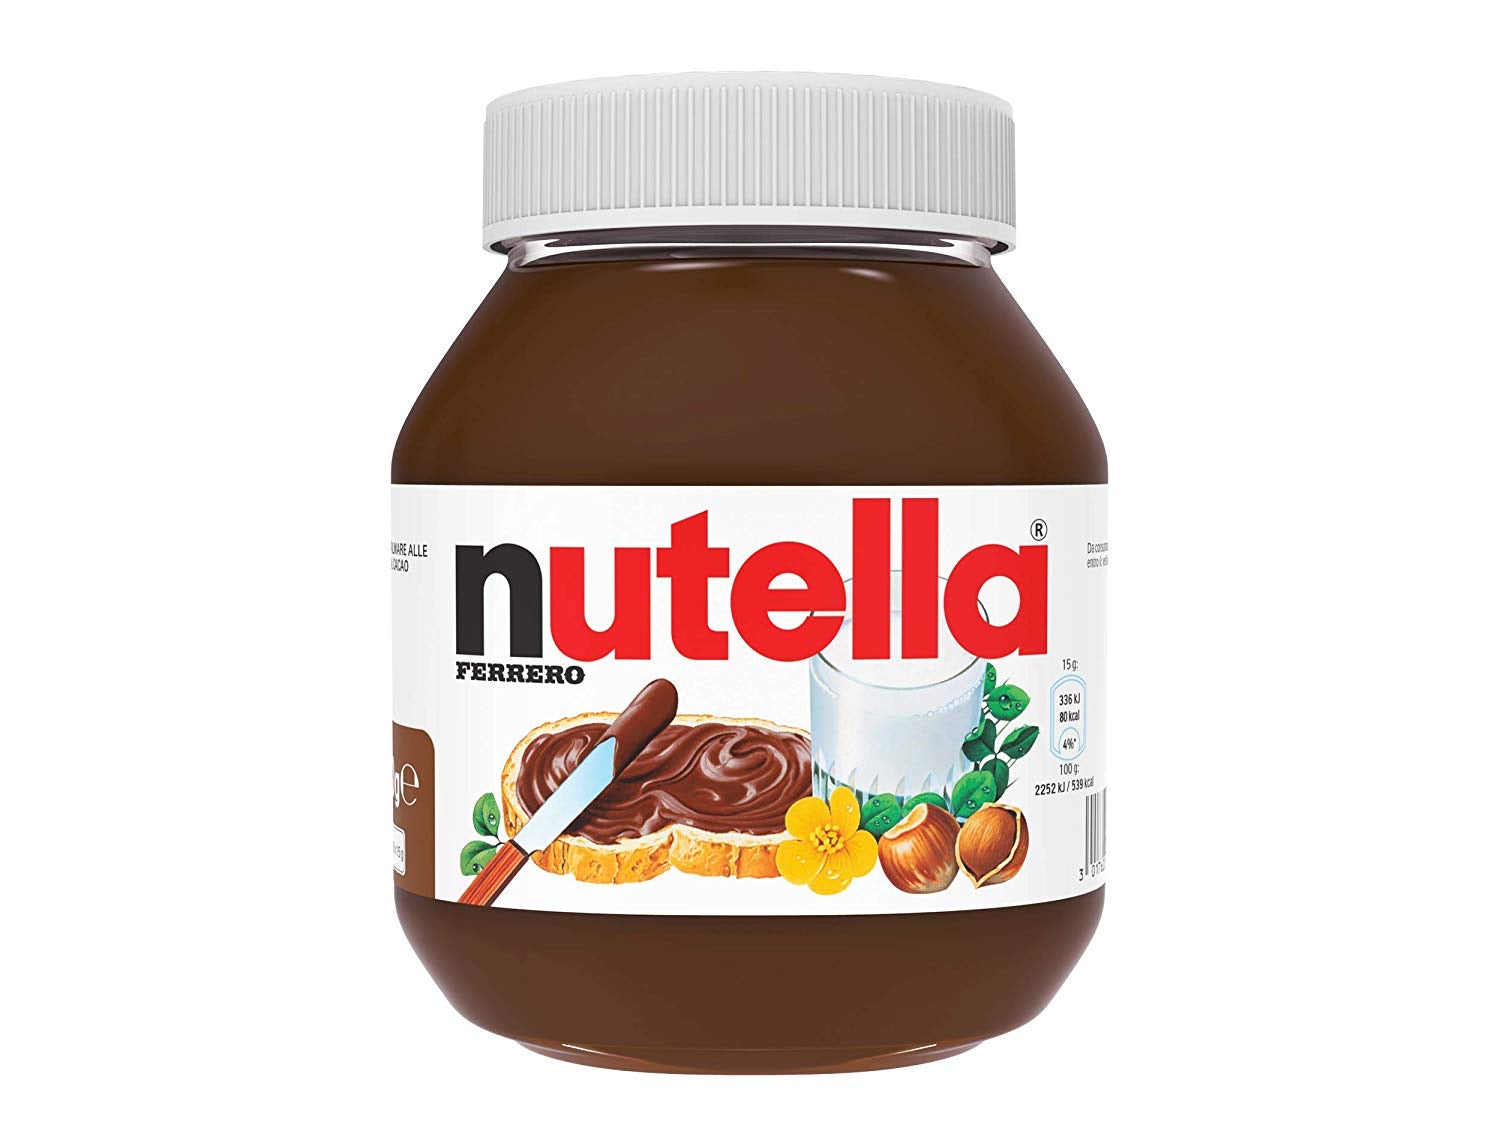 Italian Nutella Ferrero glass jar 750g